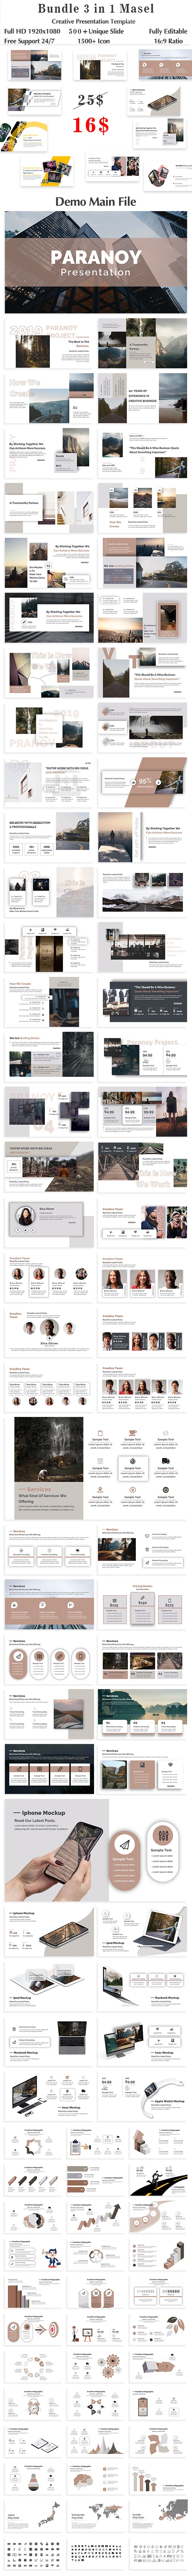 Bundle 3 in 1 Masel Creative Keynote Template - Creative Keynote Templates